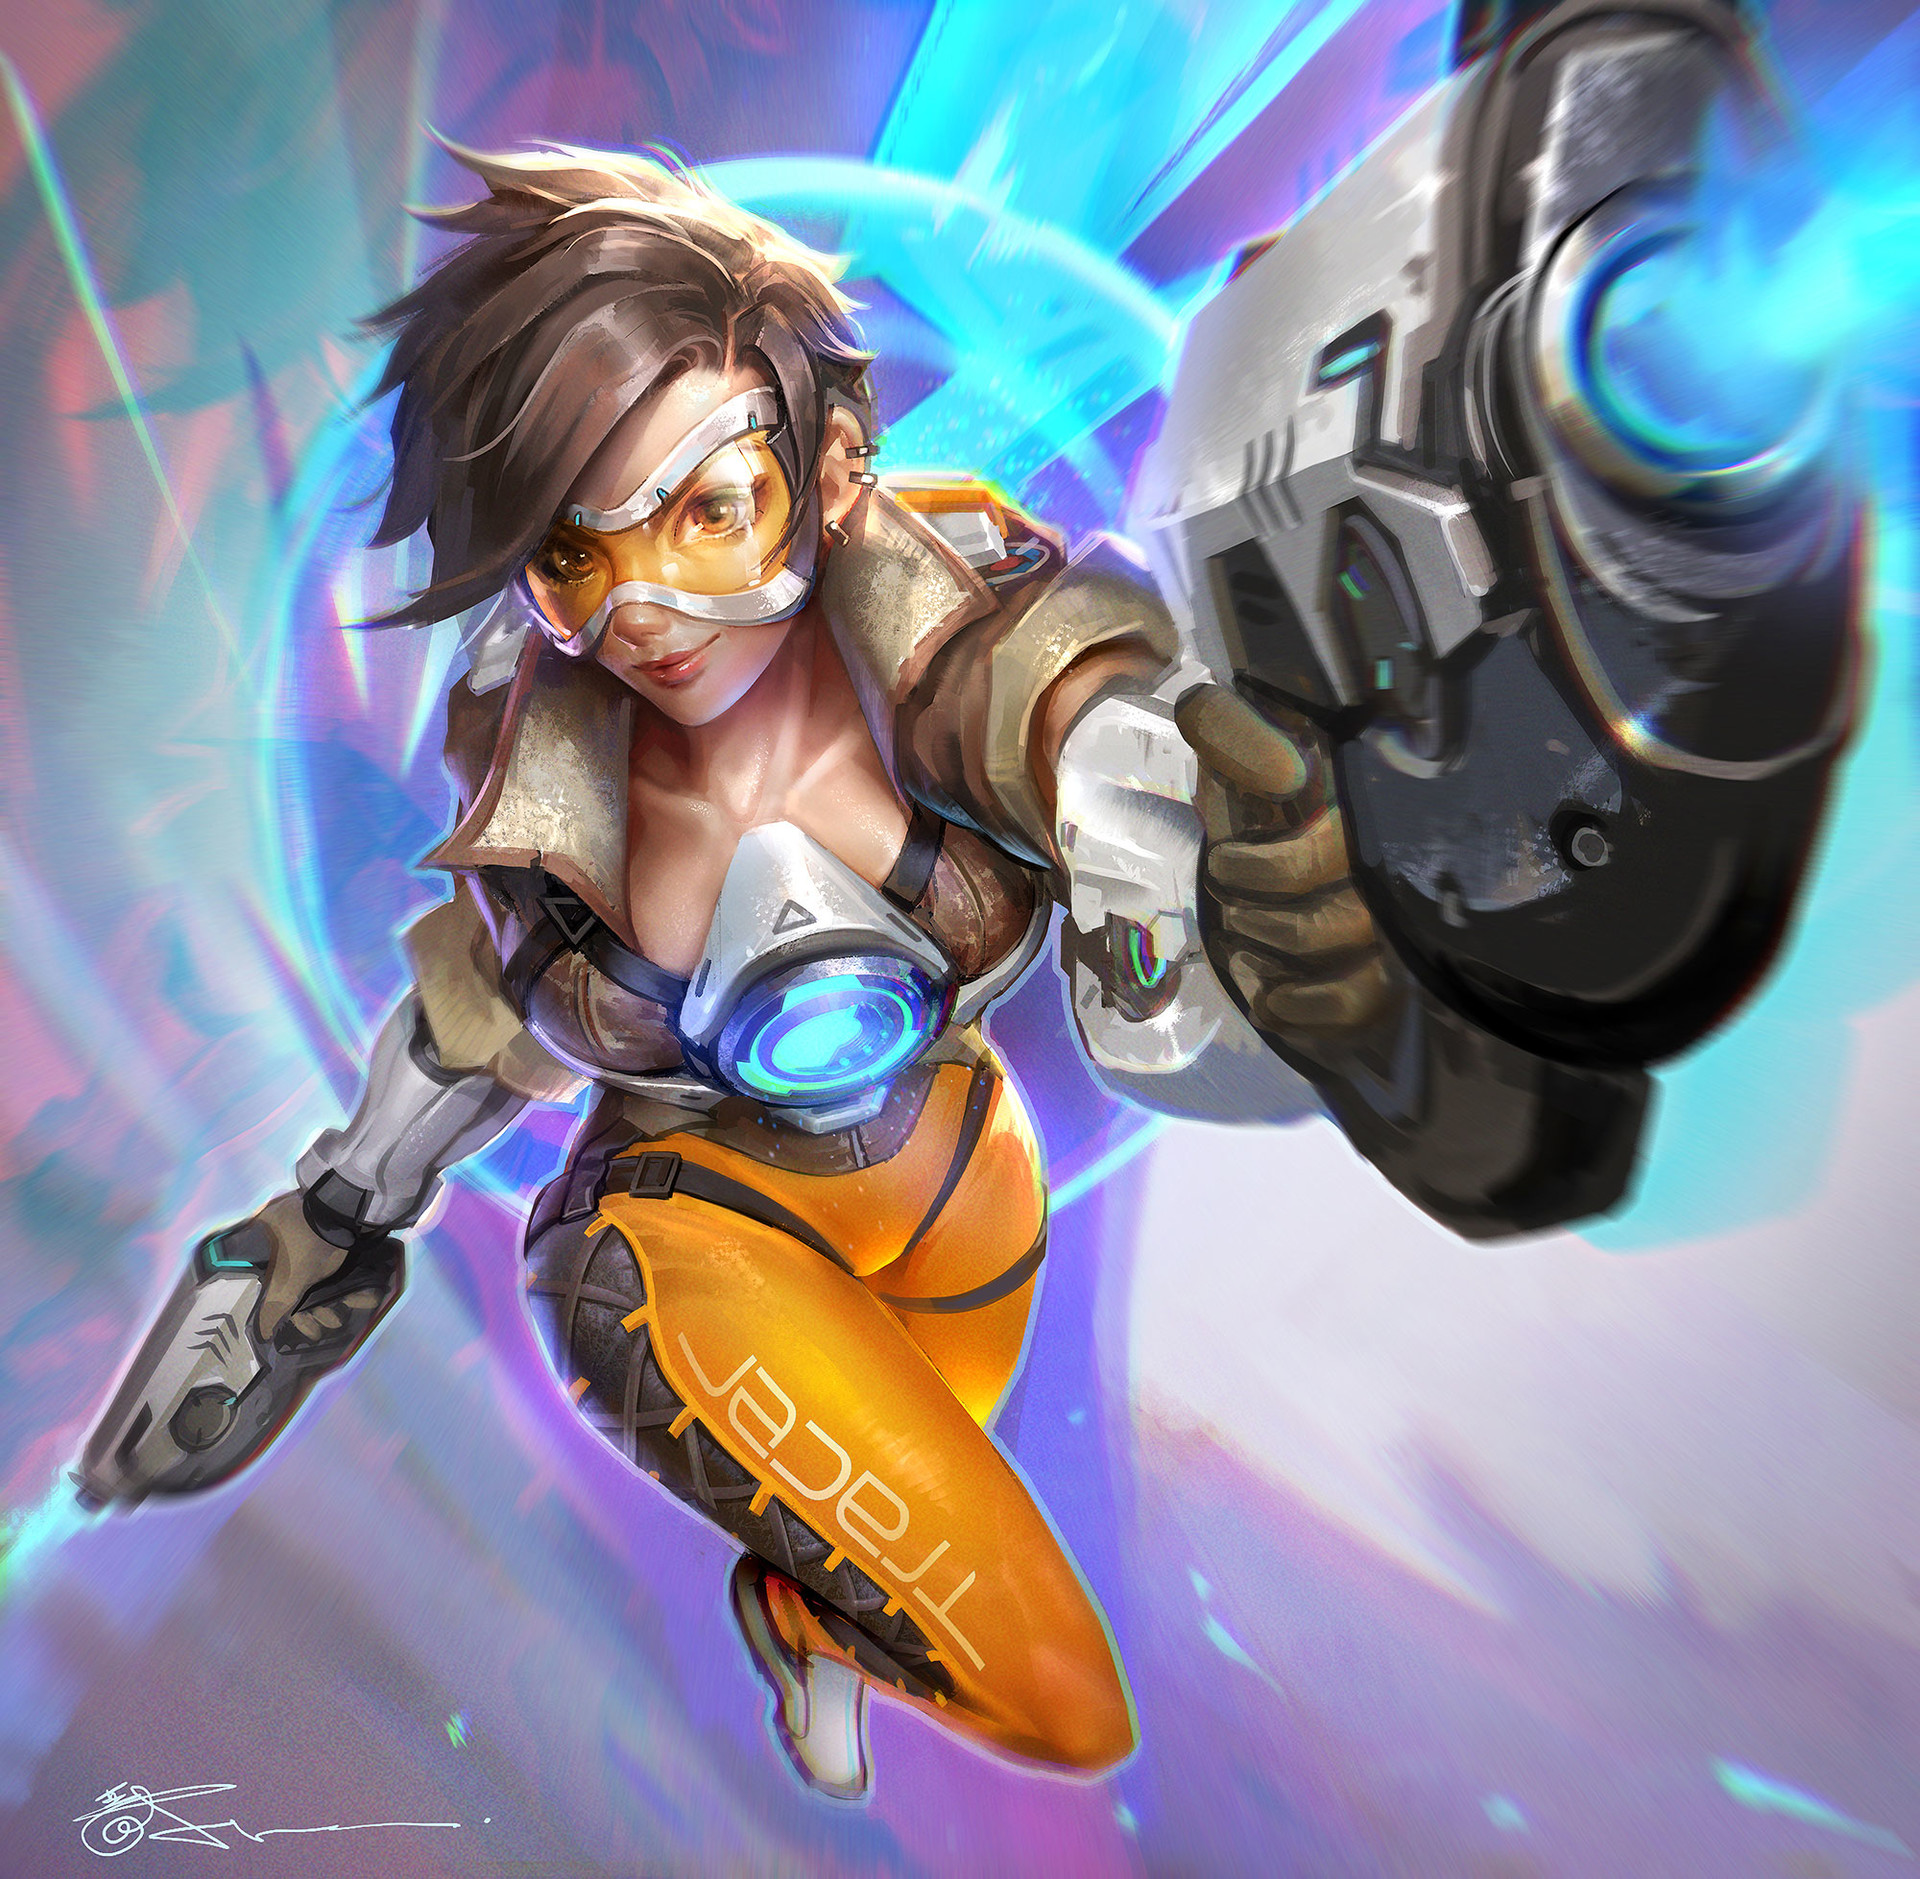 Jeremy chong overwatch tracer fanart2